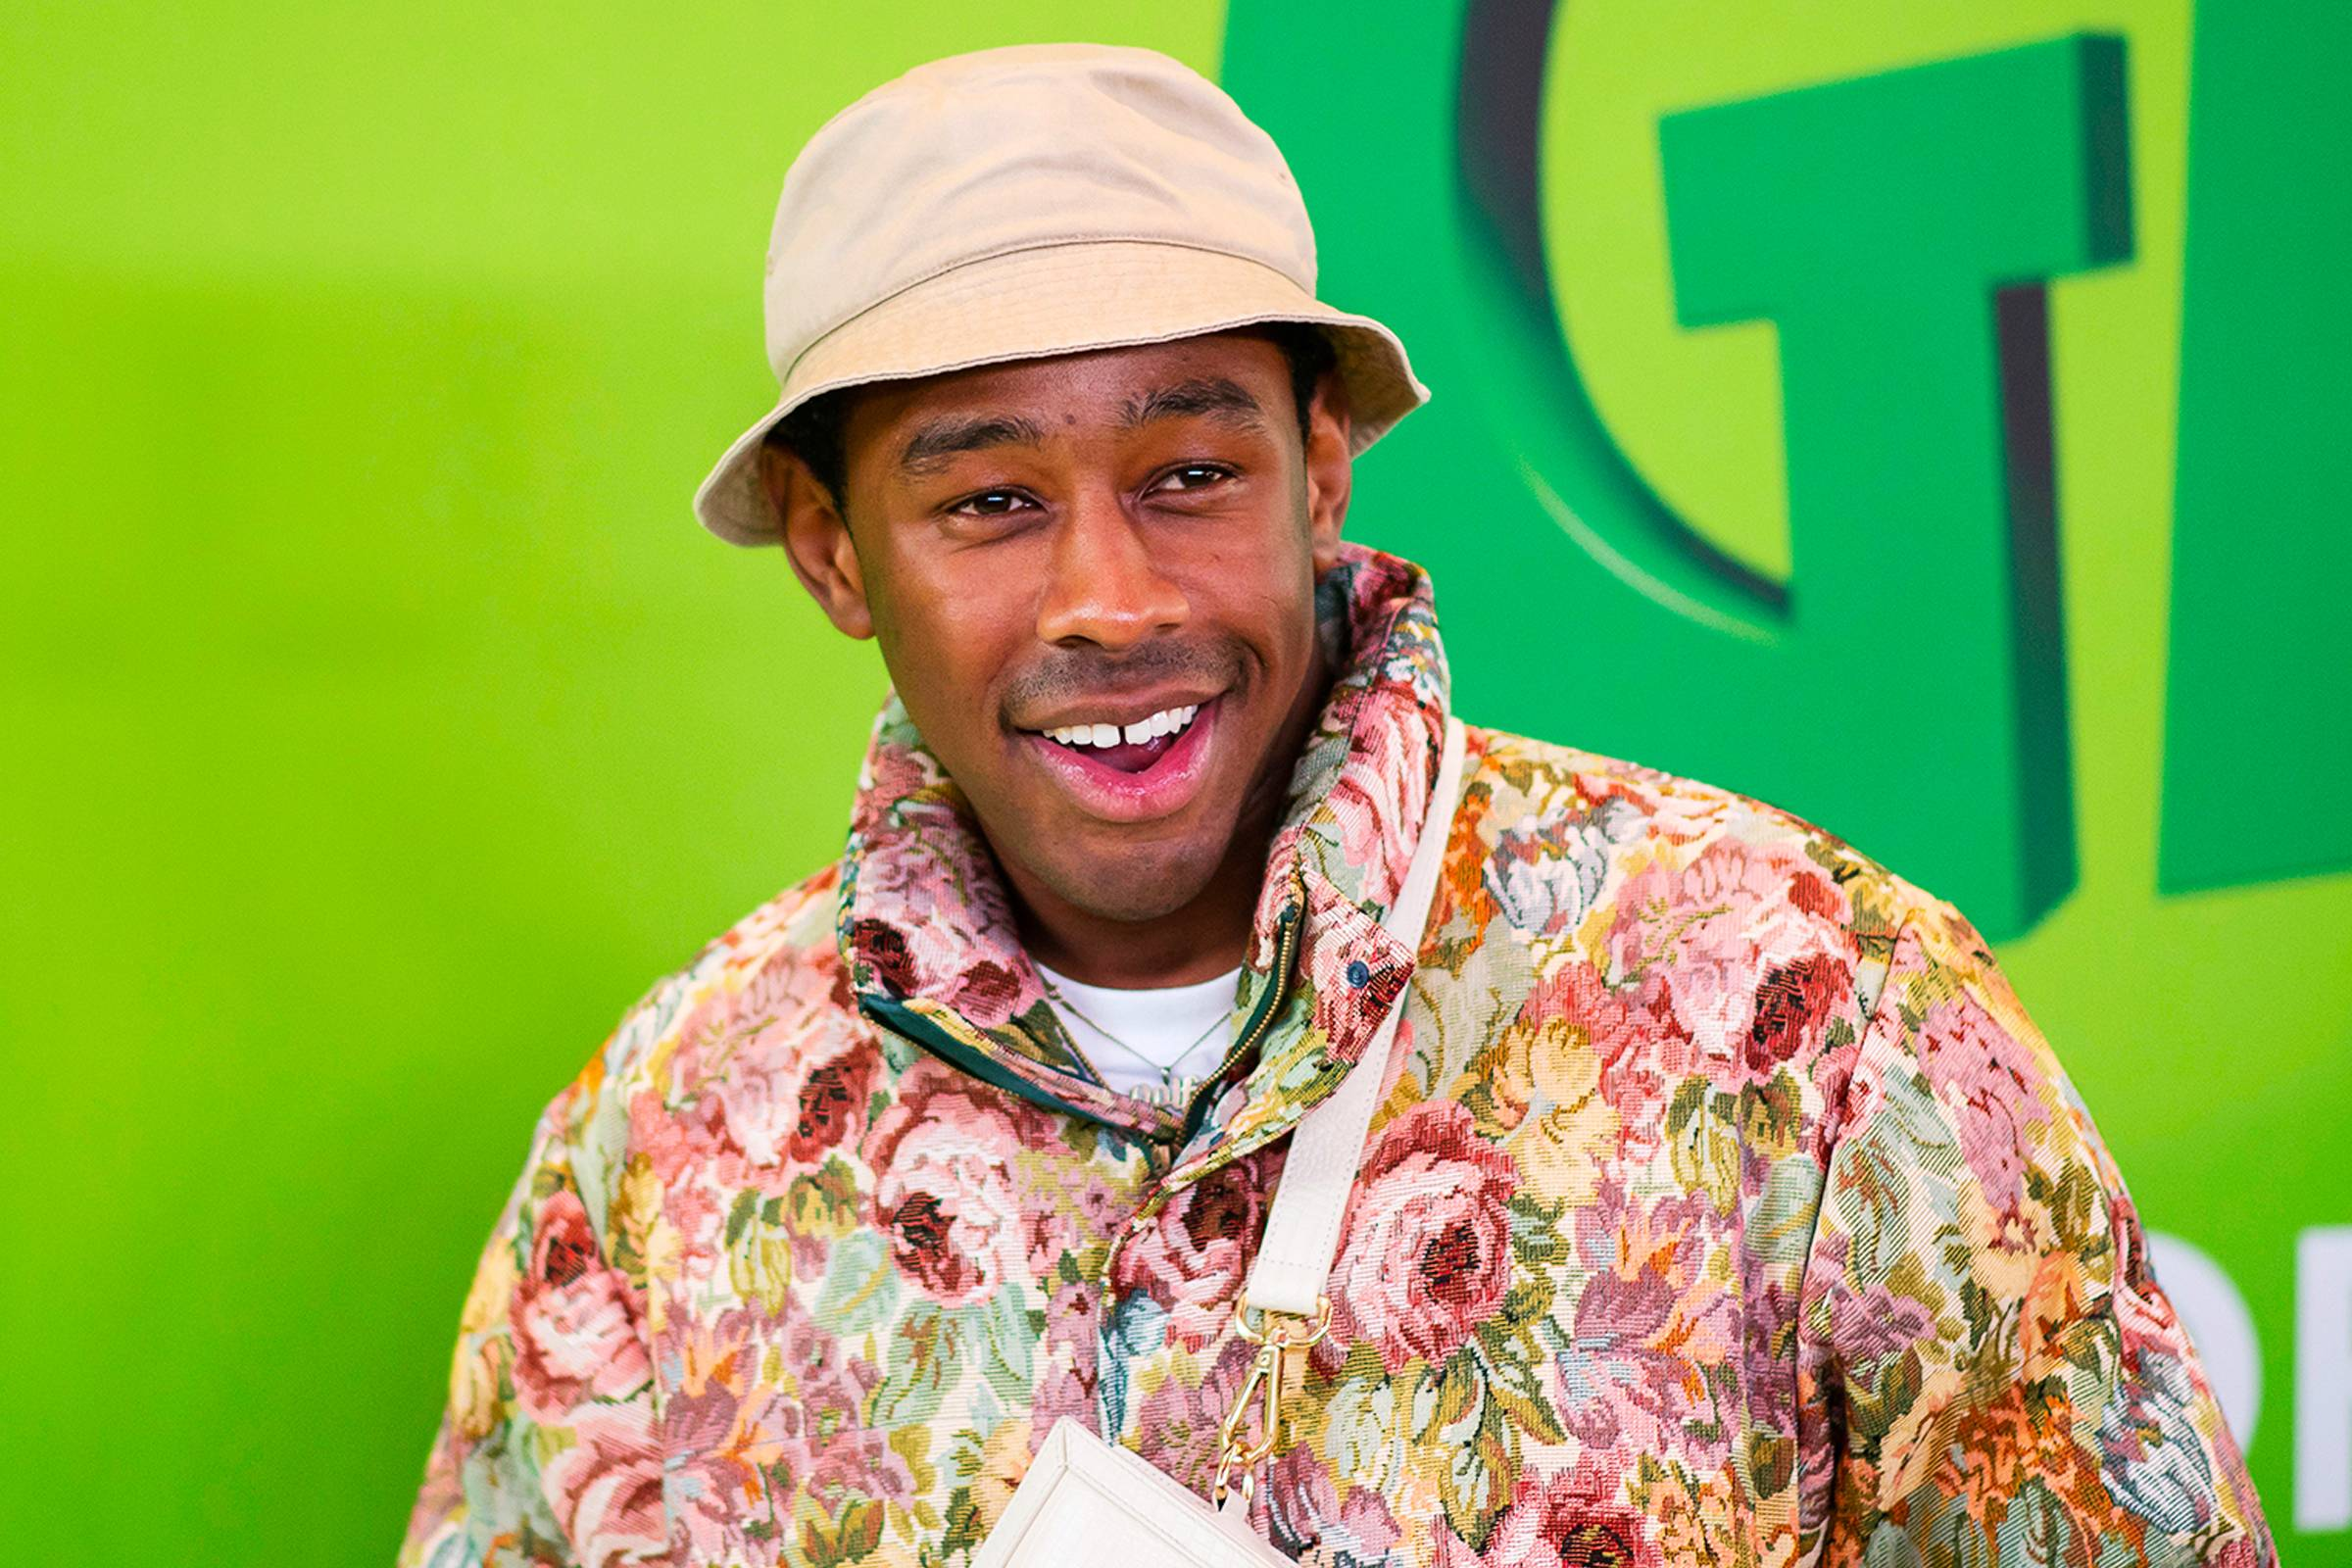 Tyler The Creator A Different Type Of Rapper Grailed